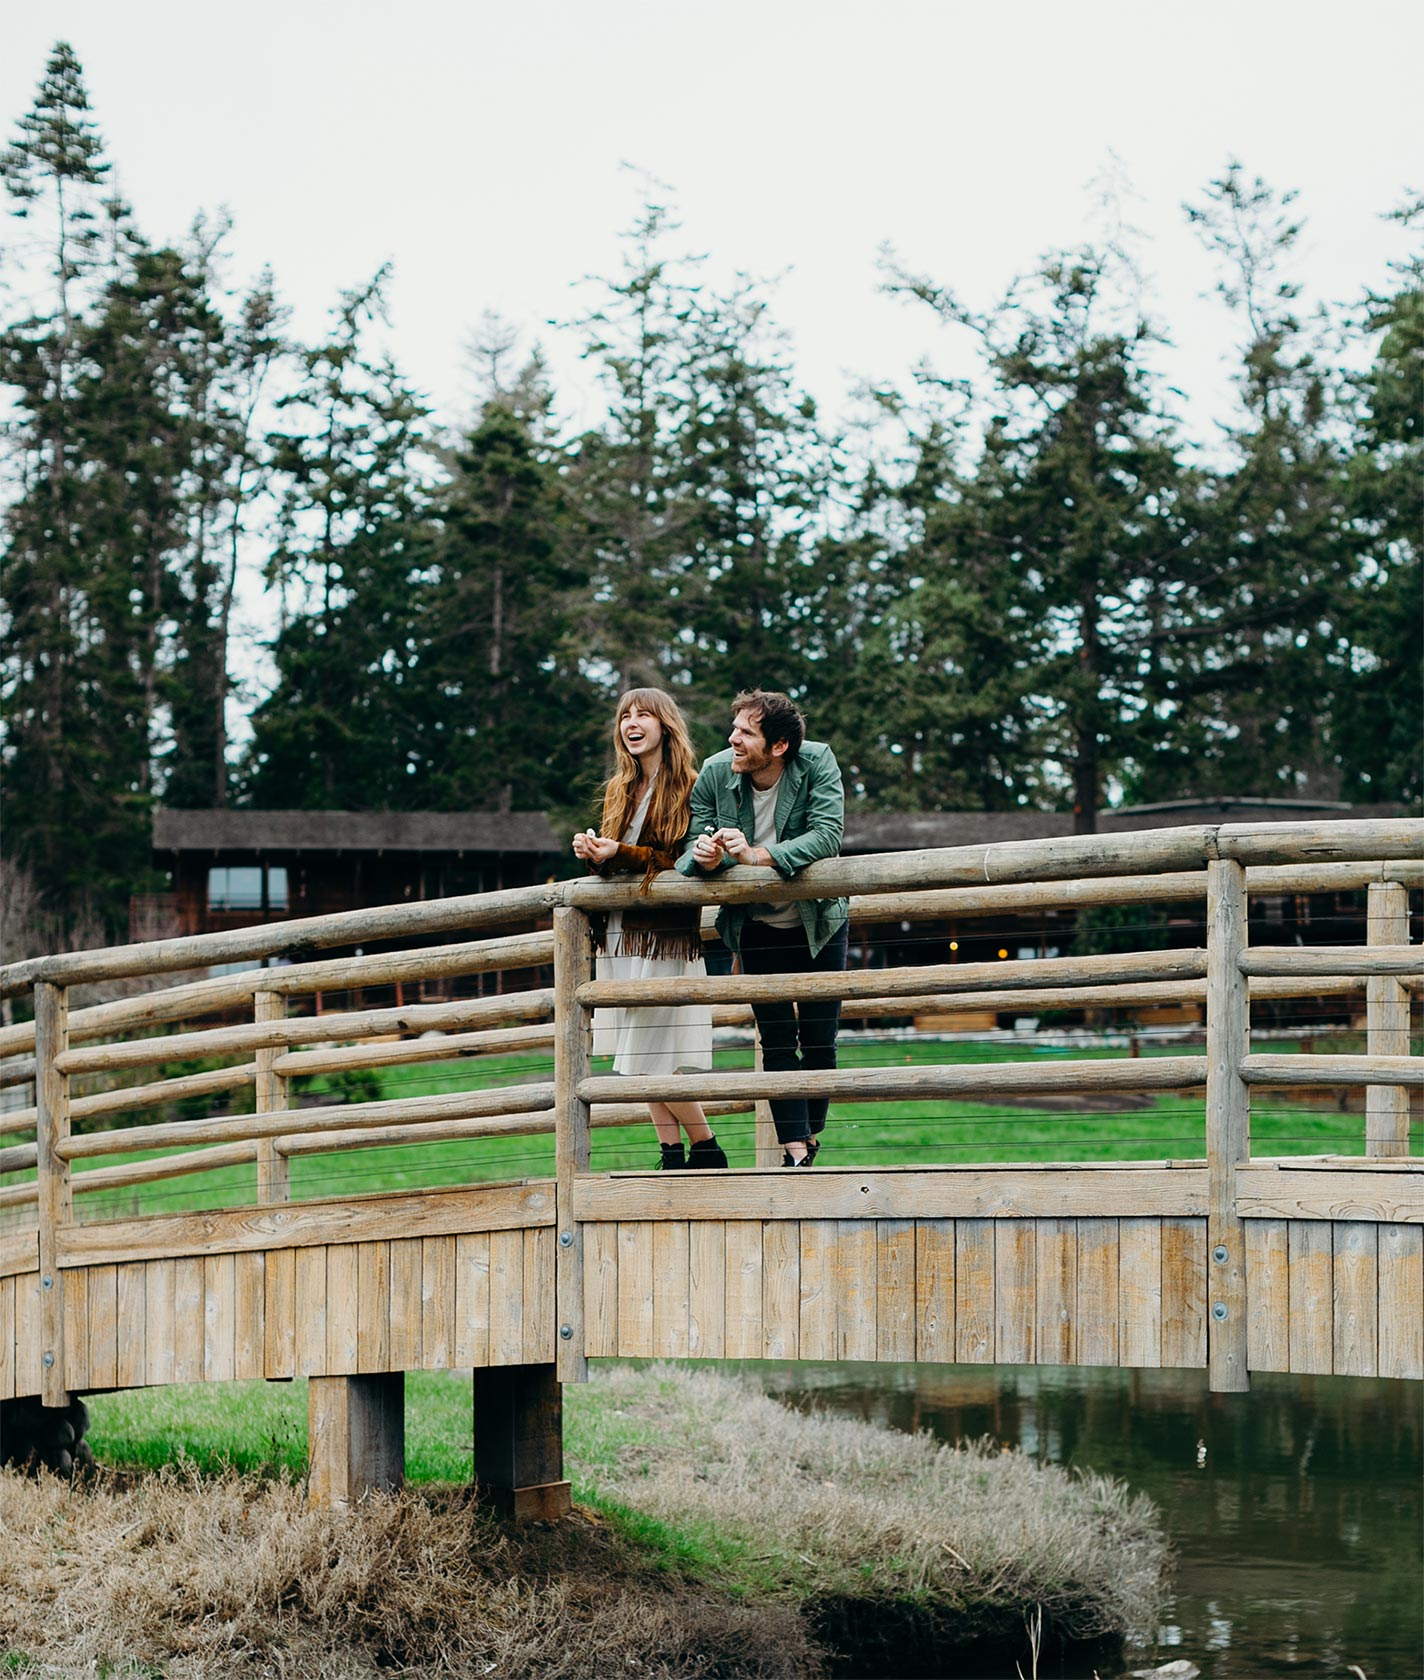 captain whidbey inn Coupeville, WA.  content creation by Meraki Narrative: A Branding, Design, and Creative Agency